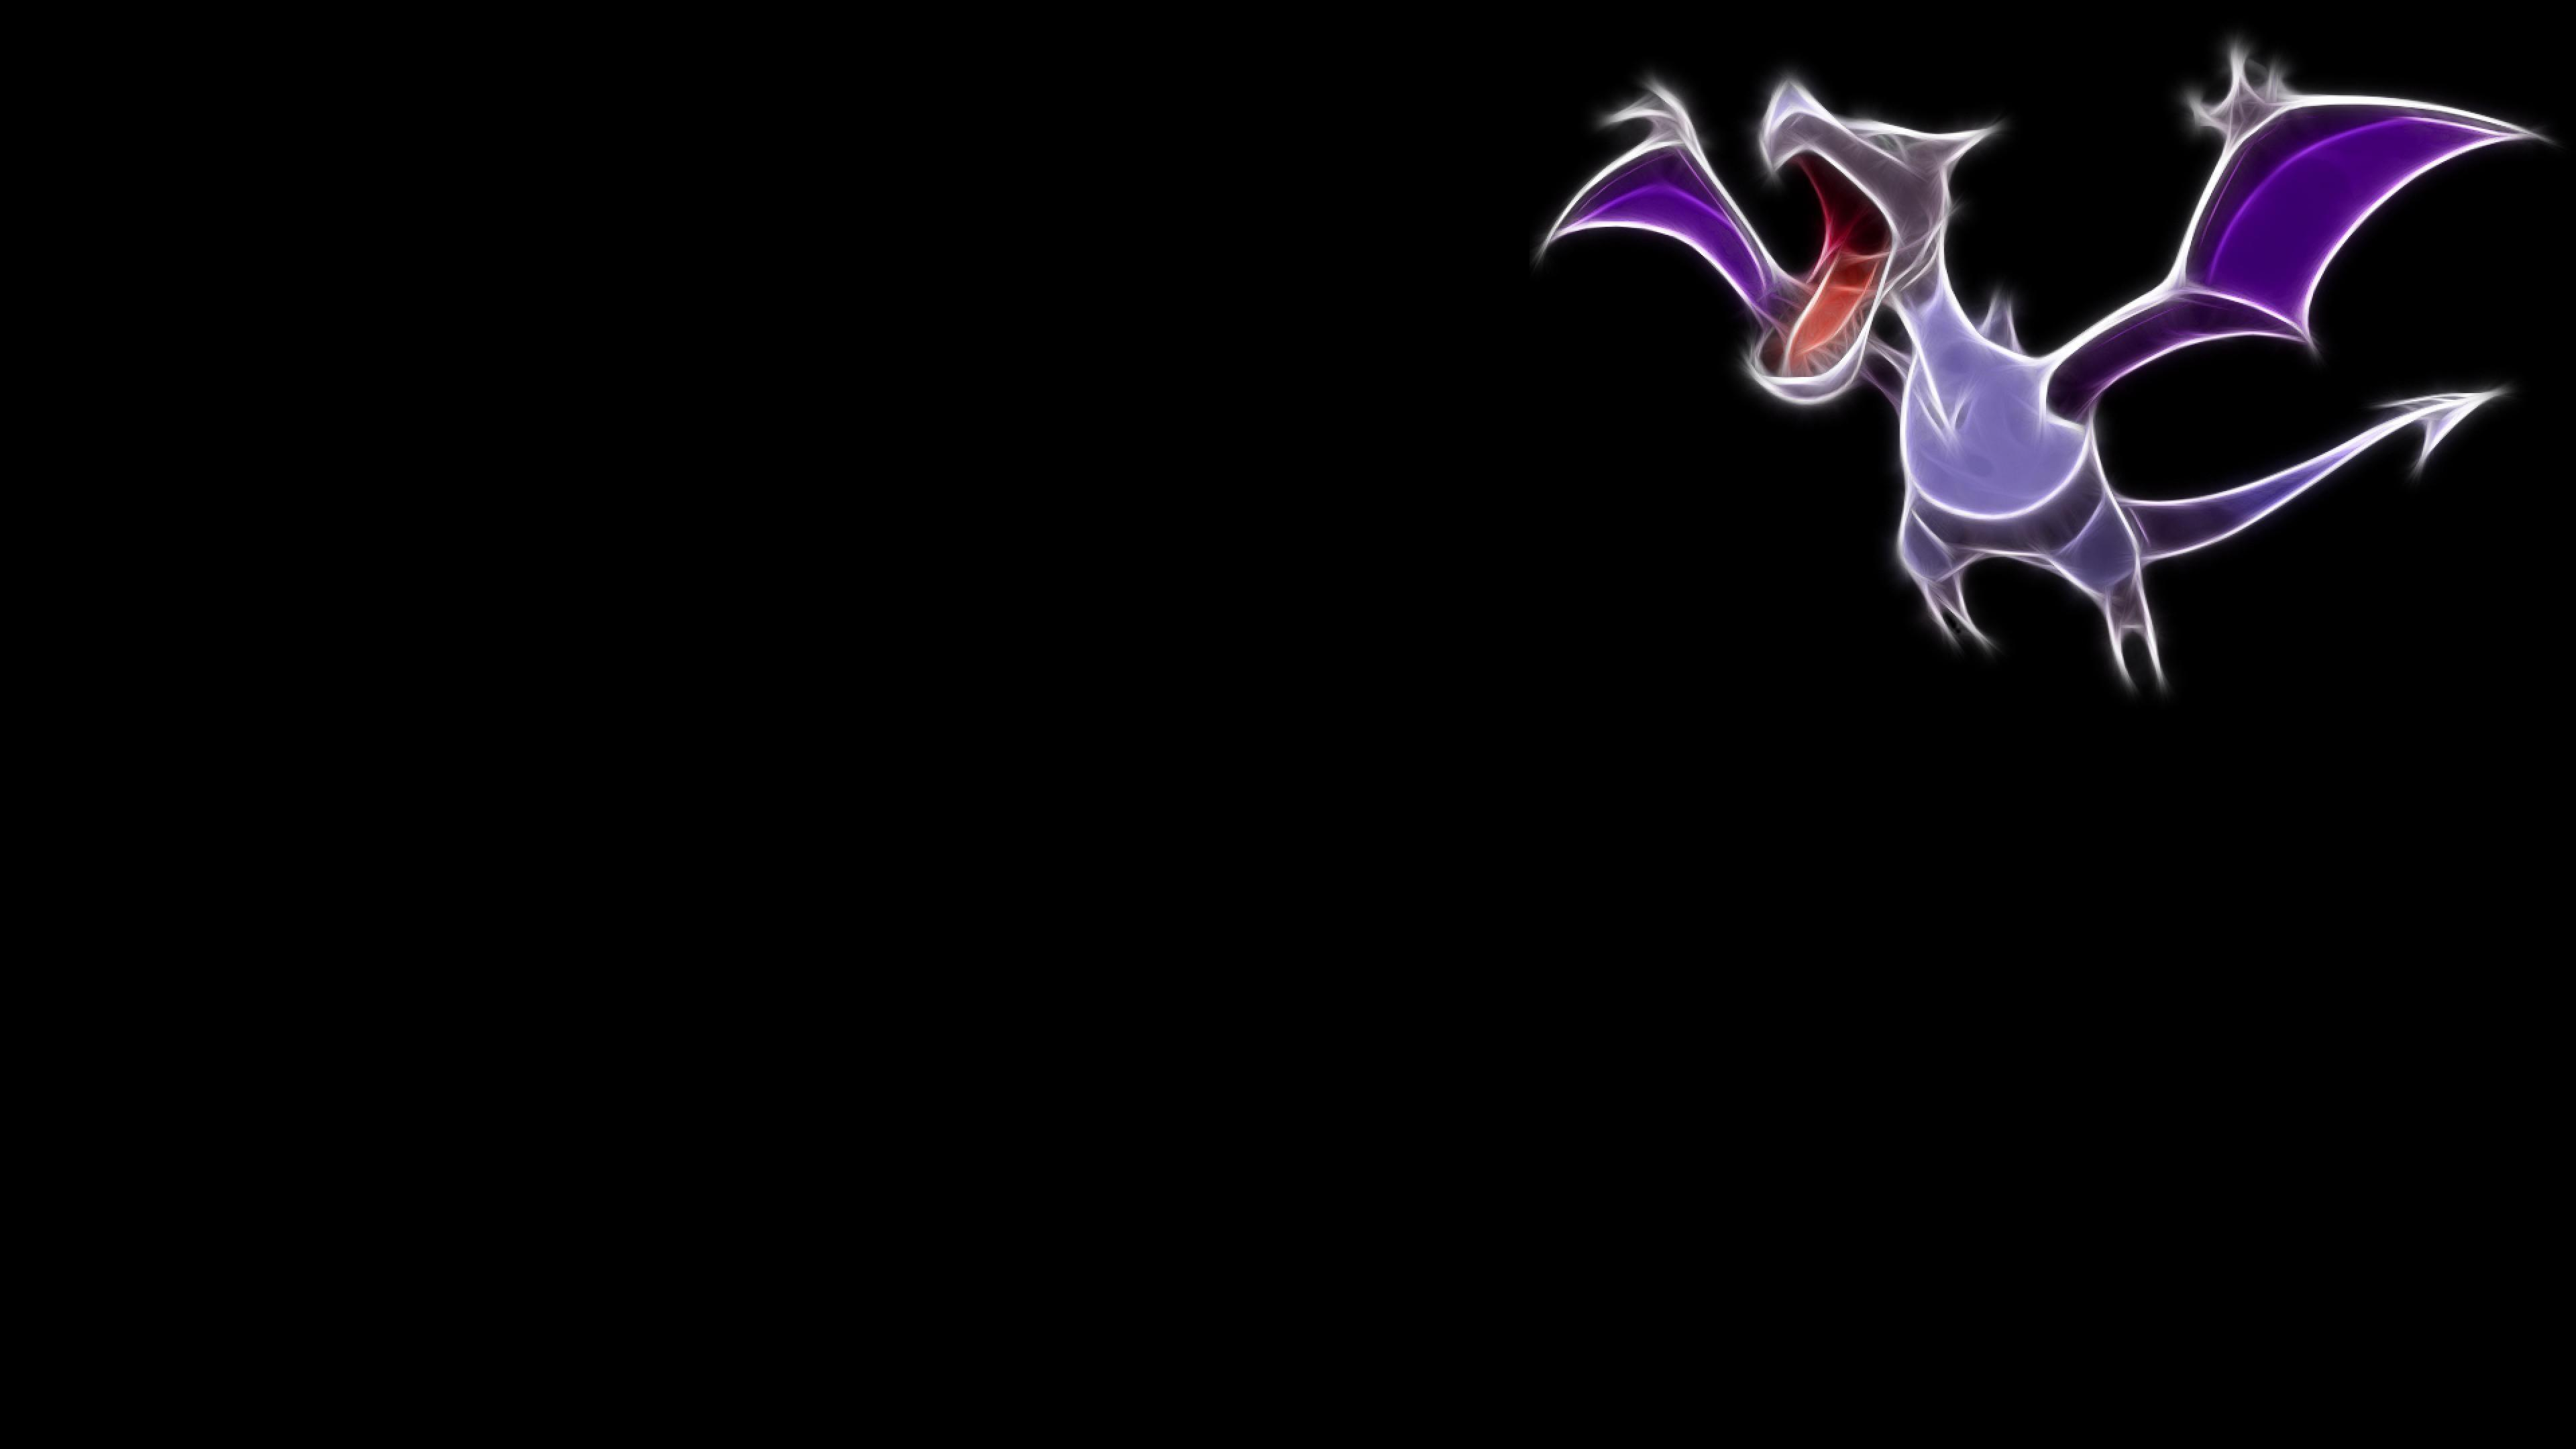 aerodactyl pokemon black background best widescreen awesome #1318192